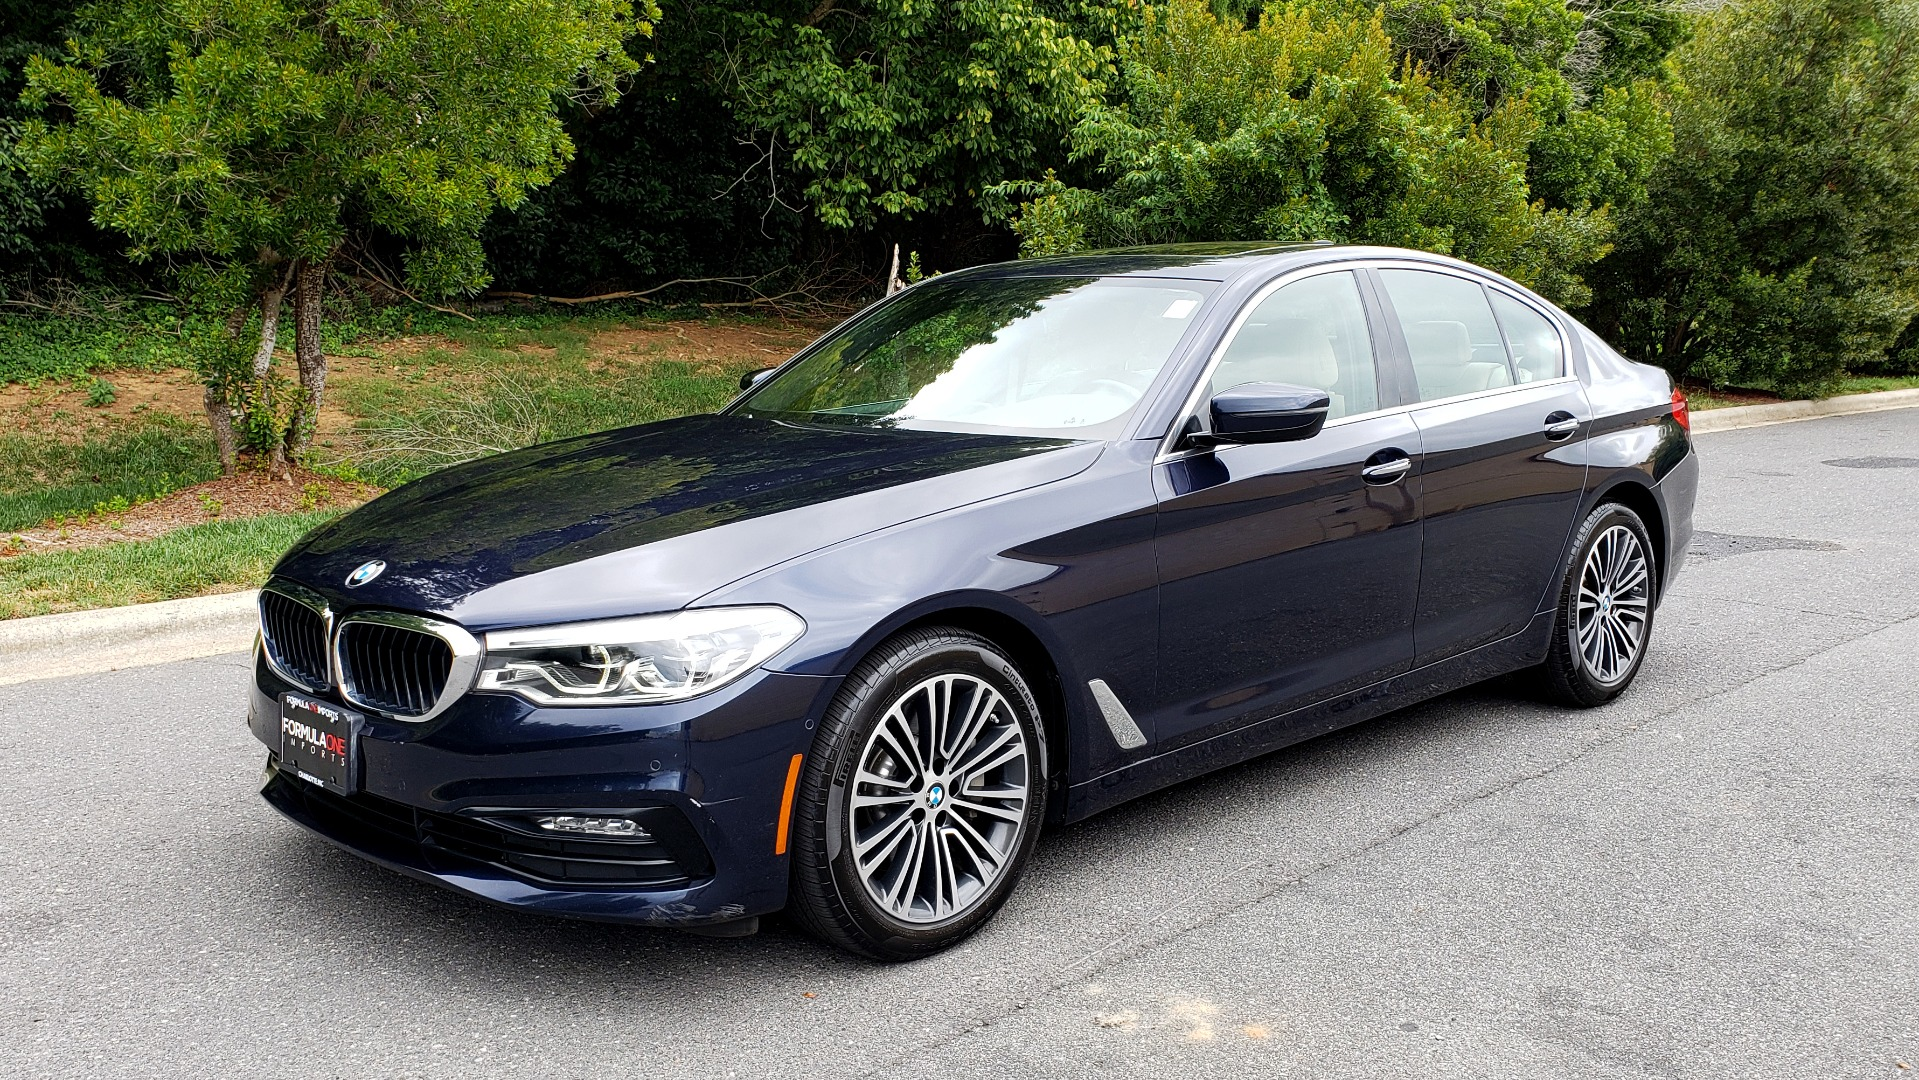 Used 2017 BMW 5 SERIES 540I XDRIVE PREMIUM / NAV / HUD / SUNROOF / REARVIEW for sale $36,595 at Formula Imports in Charlotte NC 28227 1